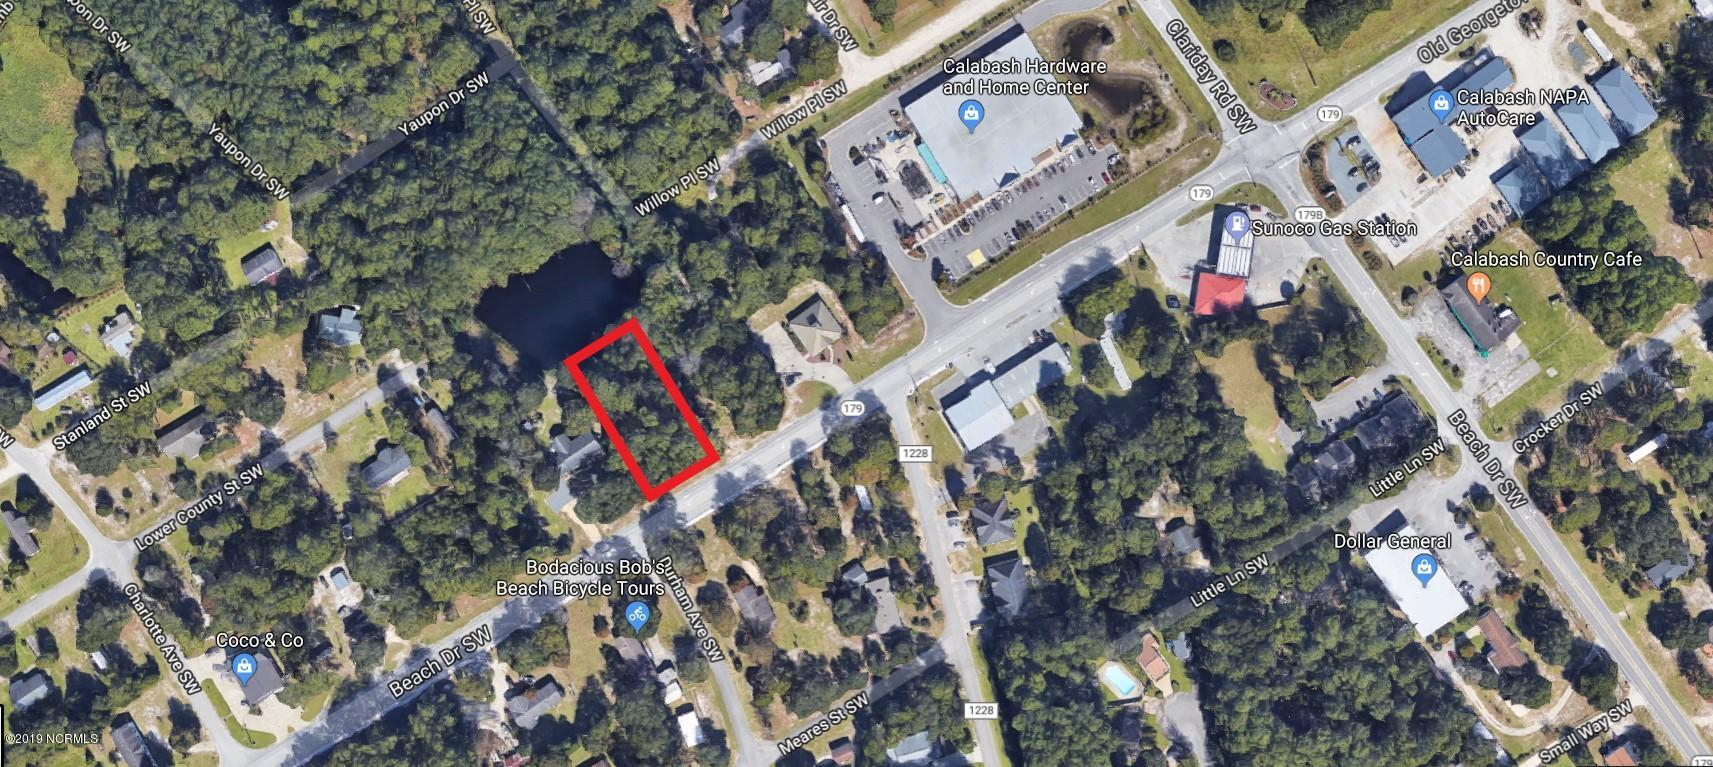 9064 Beach Drive, Calabash, North Carolina 28467, ,Commercial/industrial,For sale,Beach,100169934